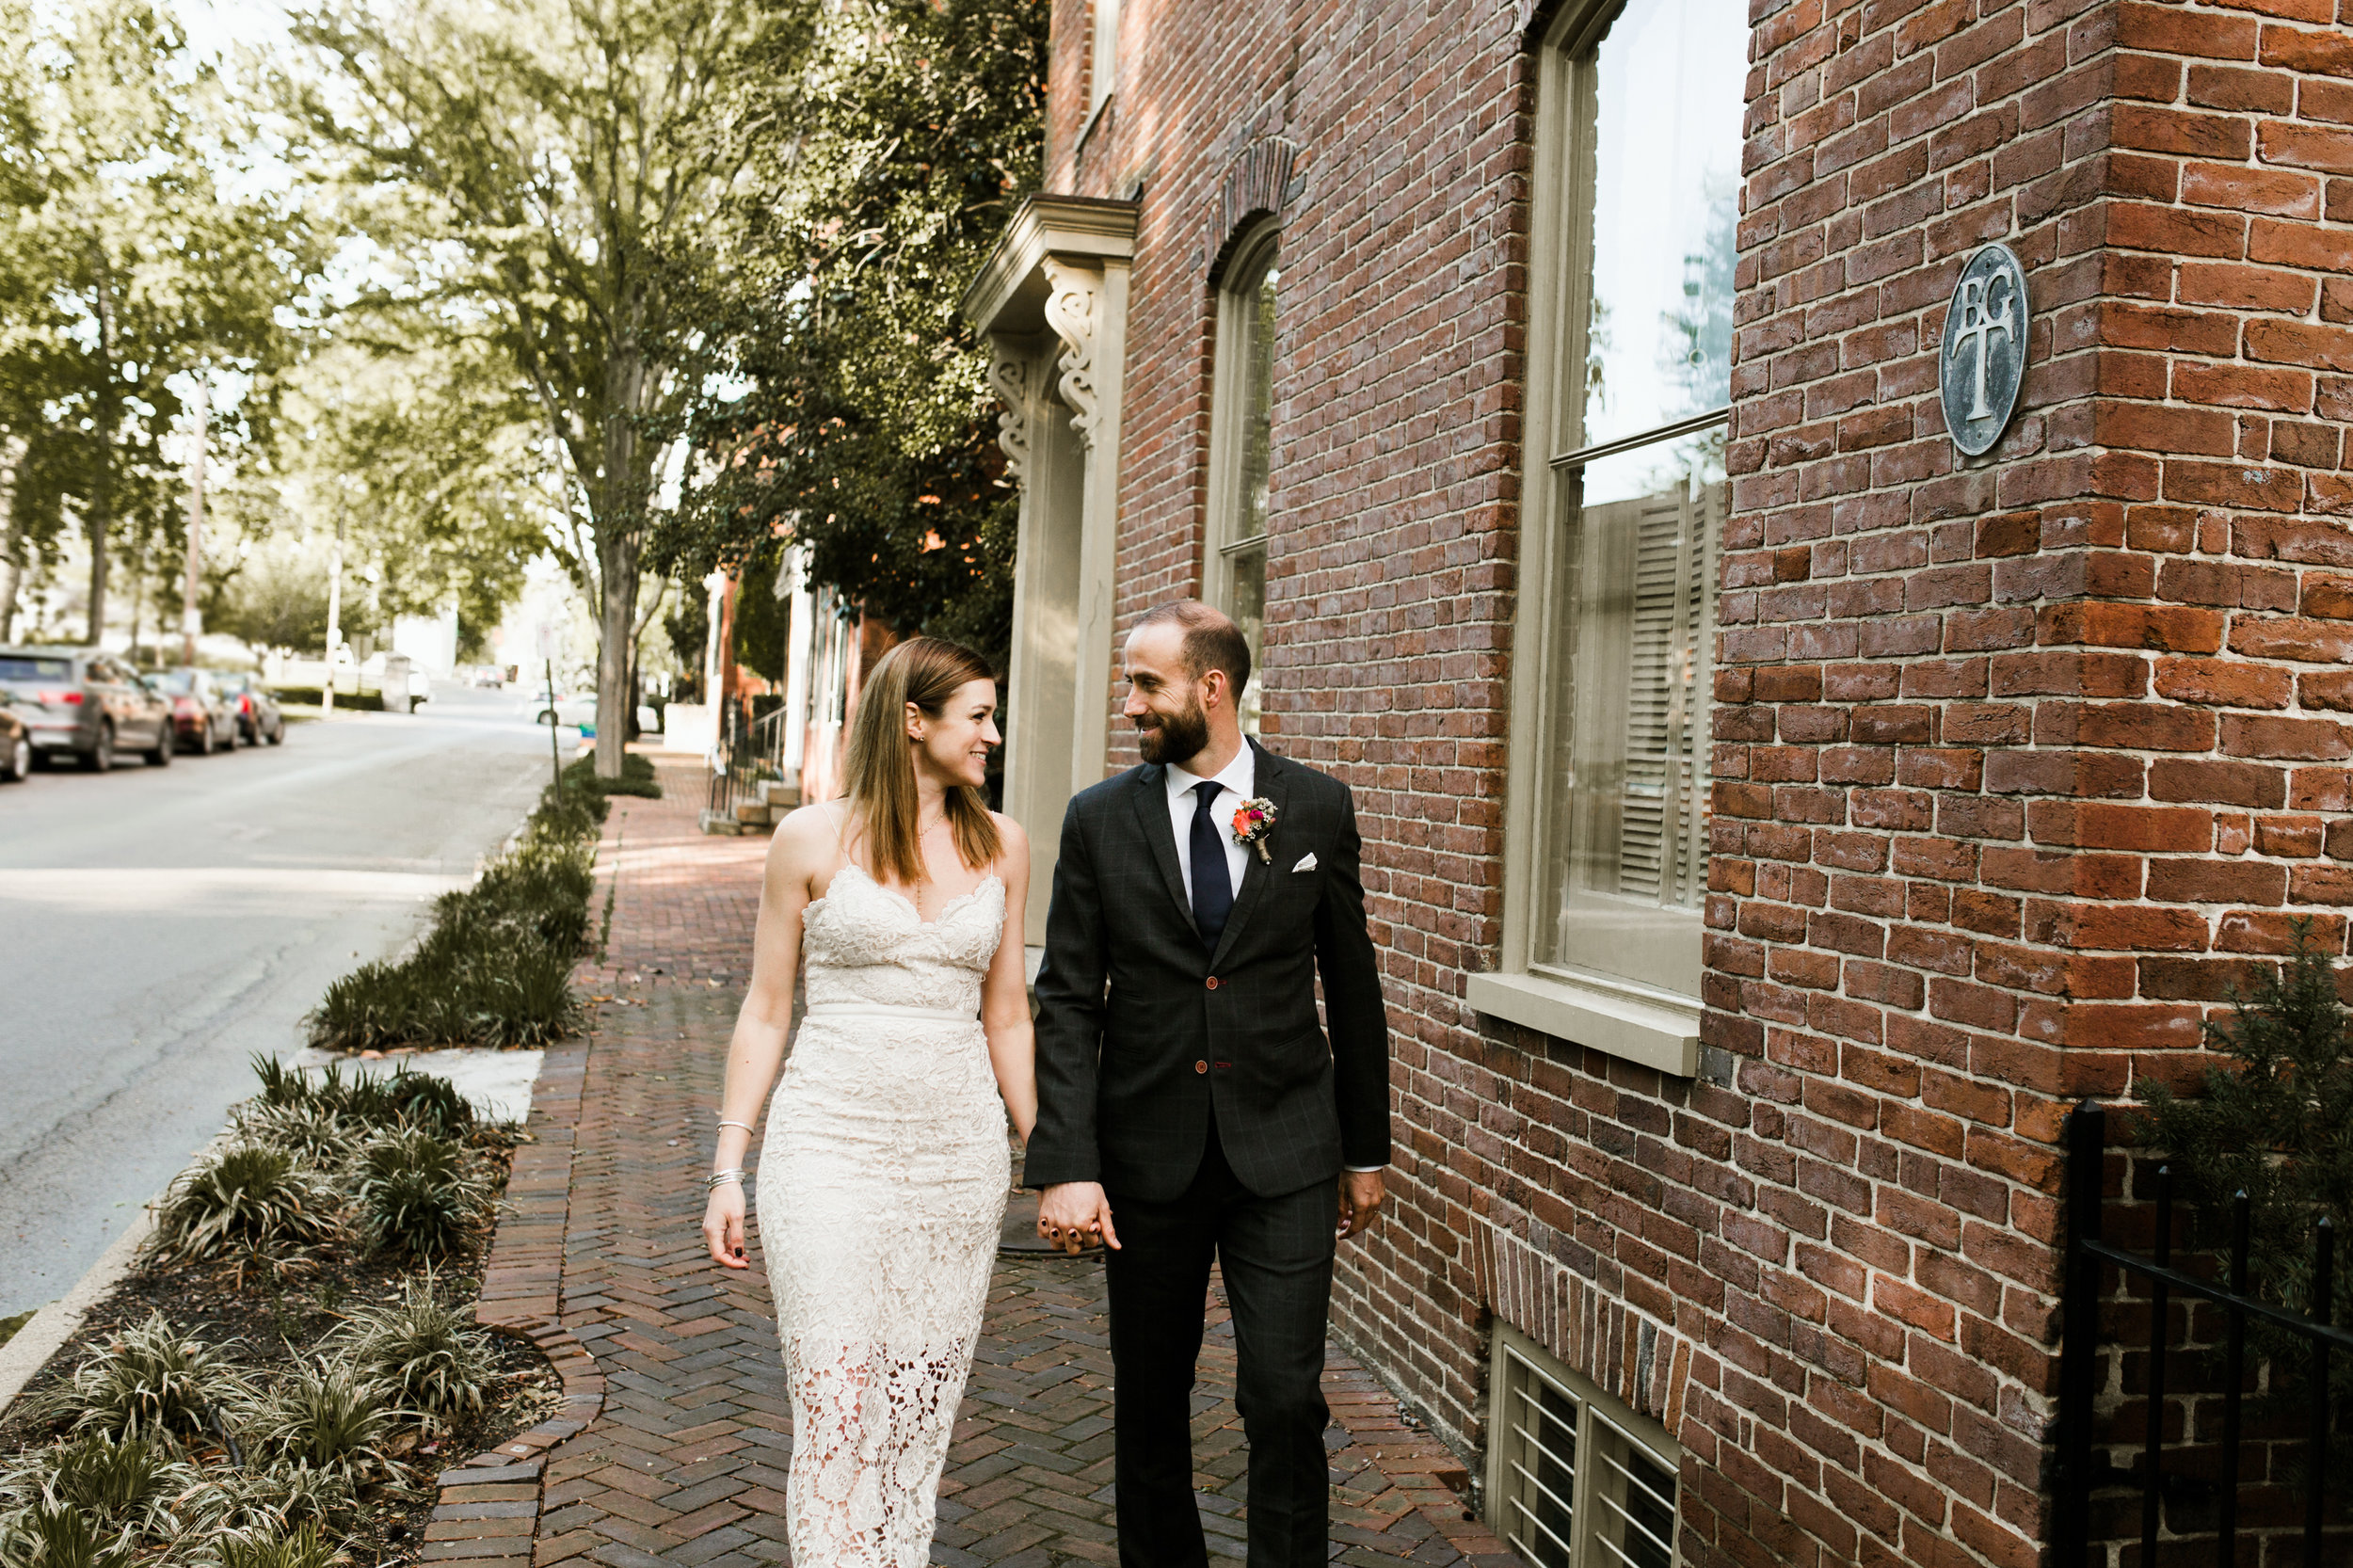 Louisville Courthouse Wedding Louisville Wedding Photographer 2018 Crystal Ludwick Photo Louisville Wedding Photographer Kentucky Wedding Photographer (63 of 76).jpg